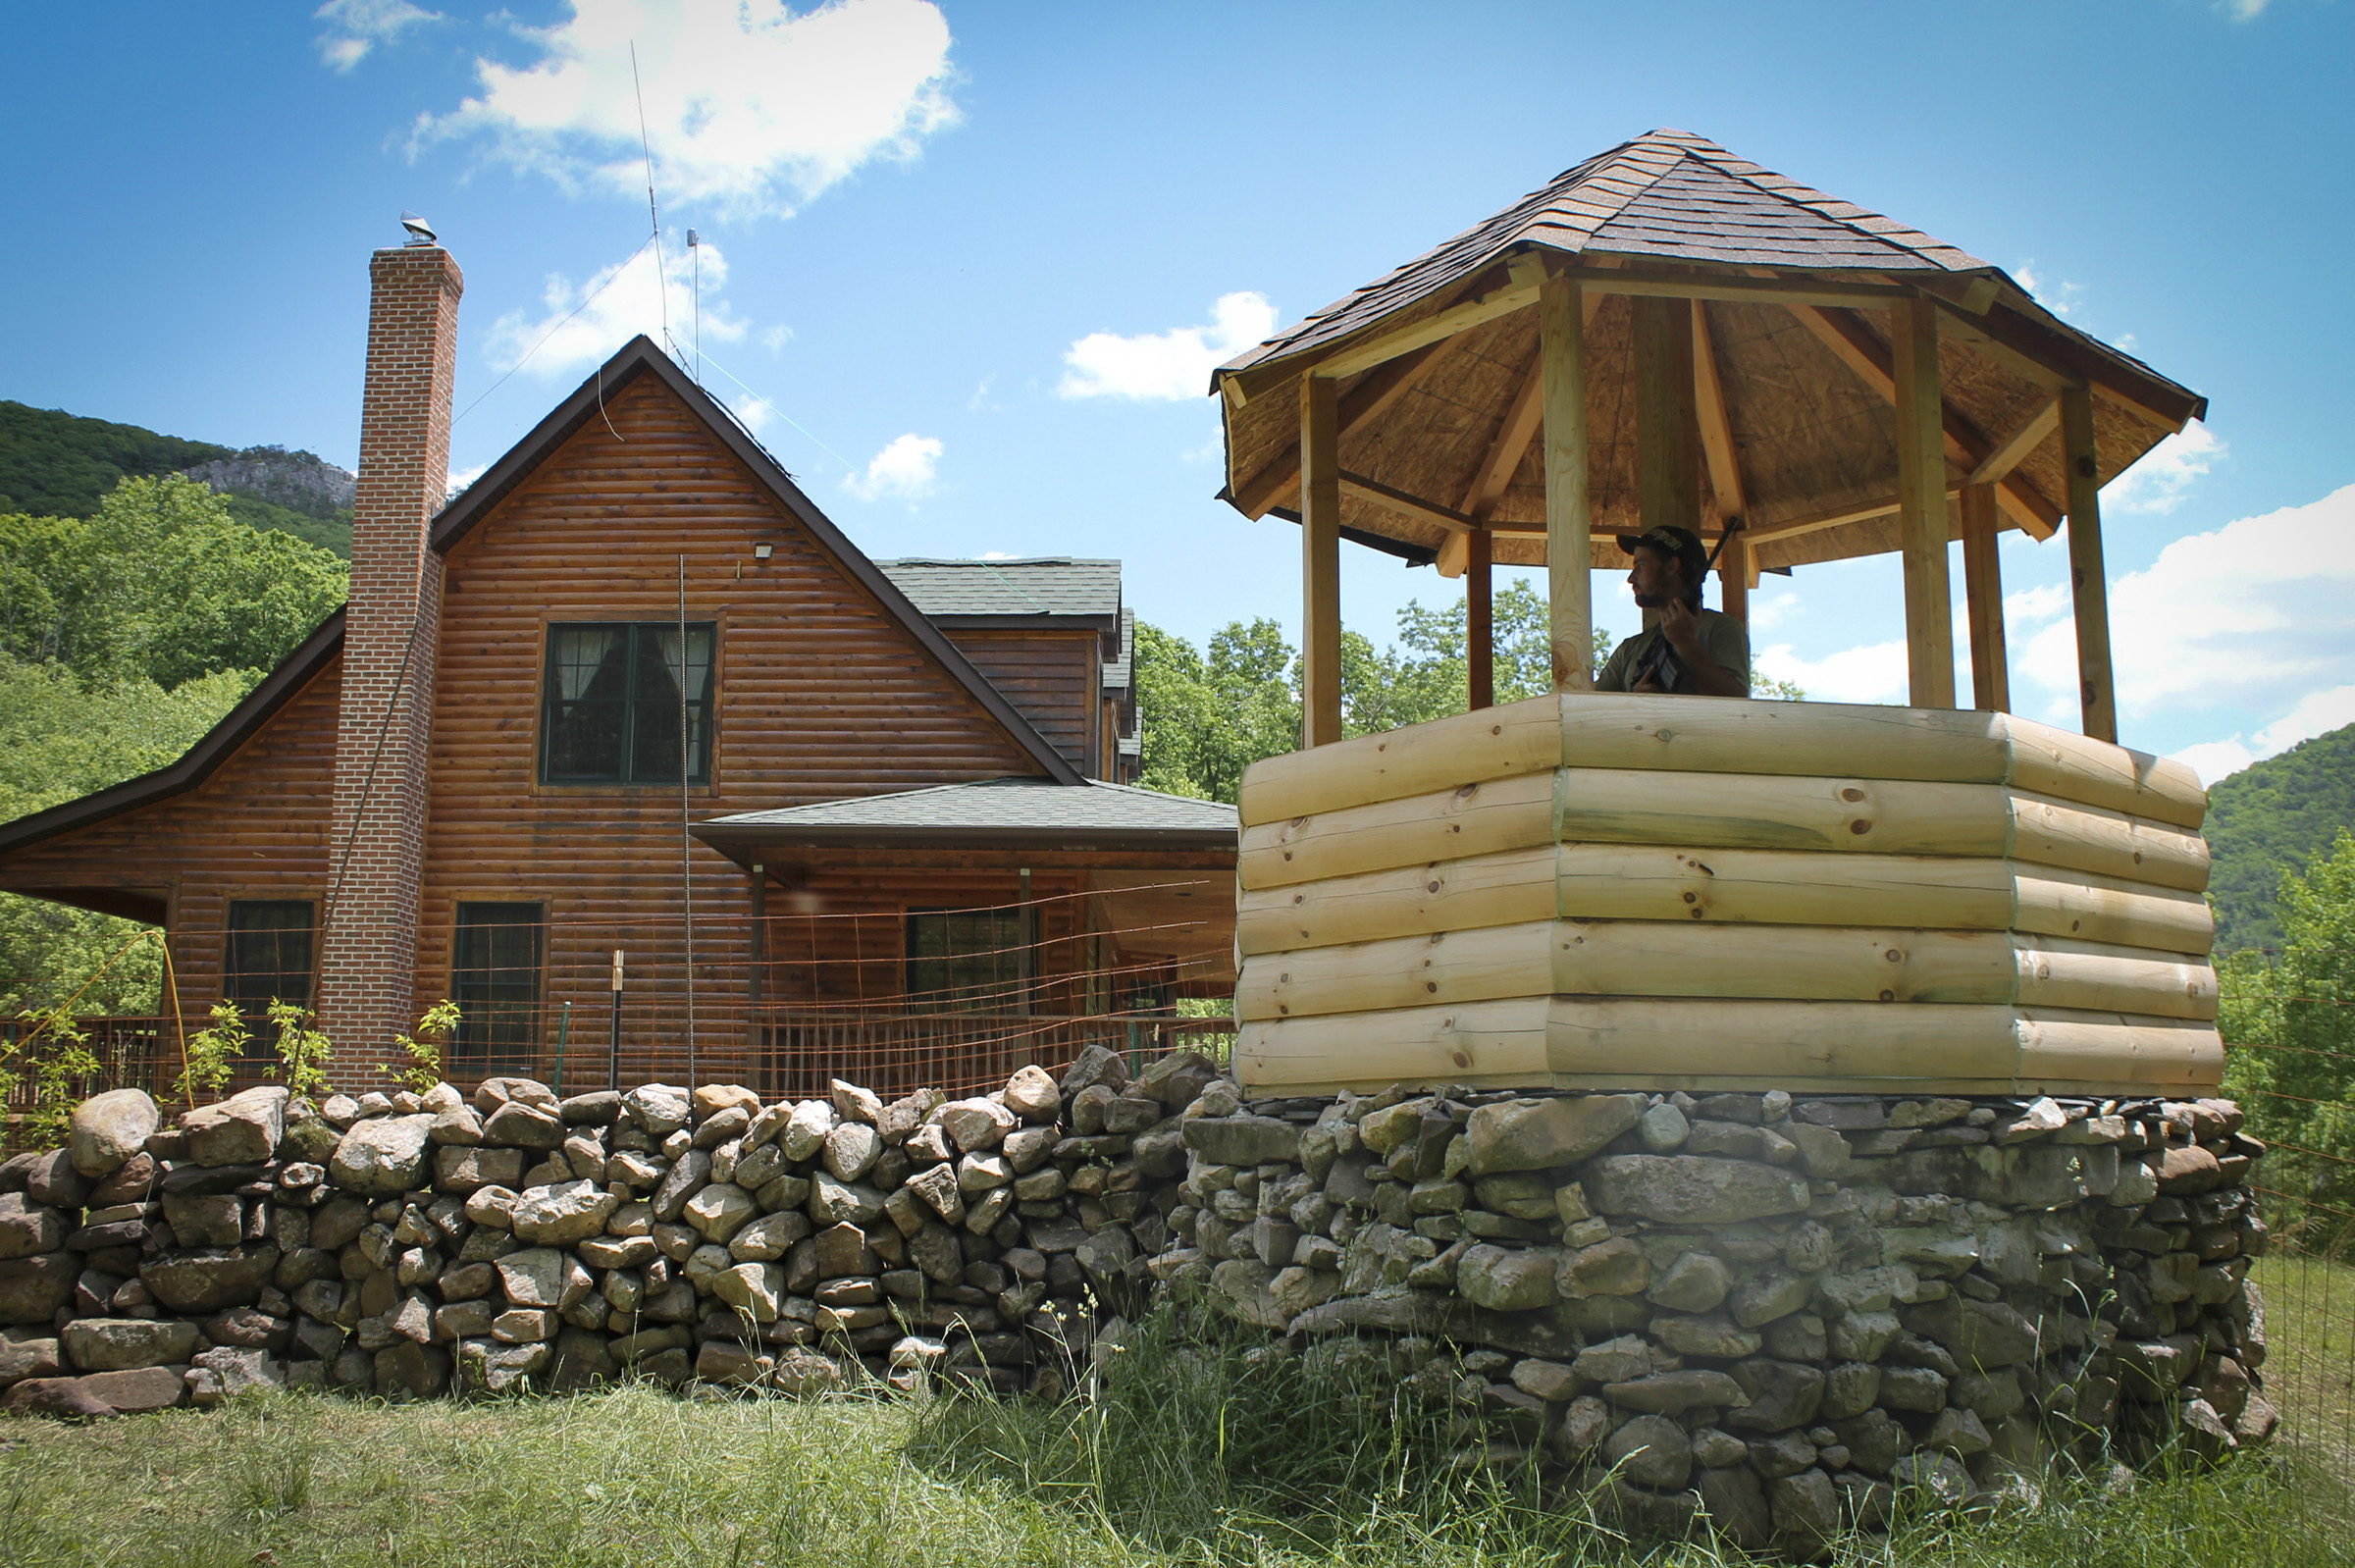 <p>One of nine completed gazebo guard towers onthe West Virginia ranch, which werecreated to aid residents in defending their compound against possible marauders.</p>